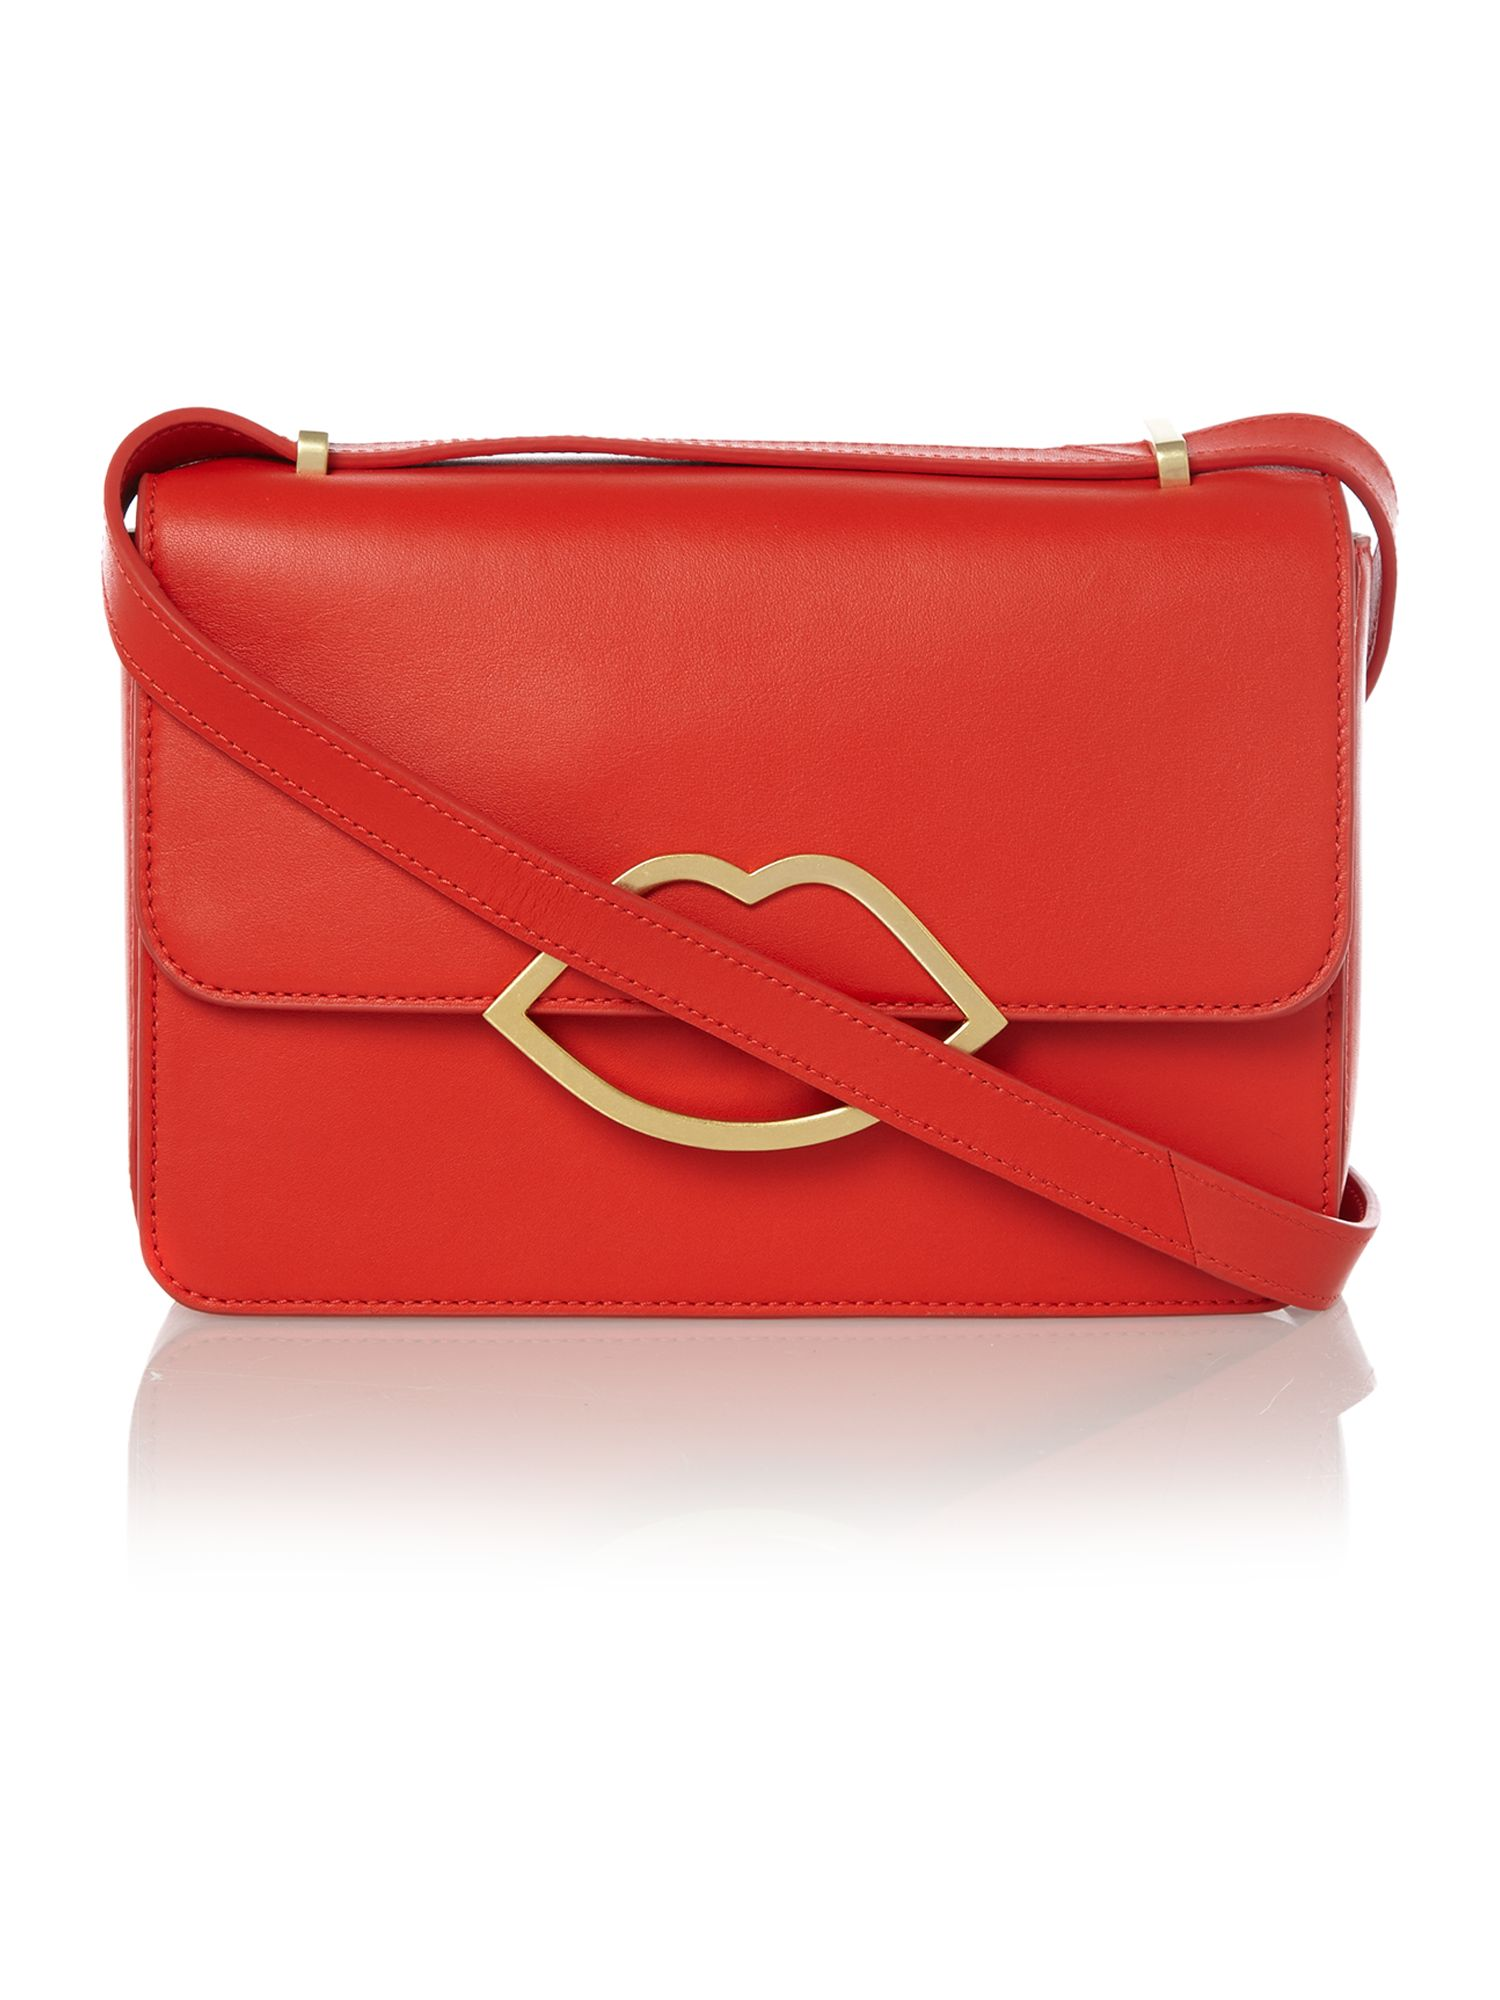 Edie red small crossbody bag